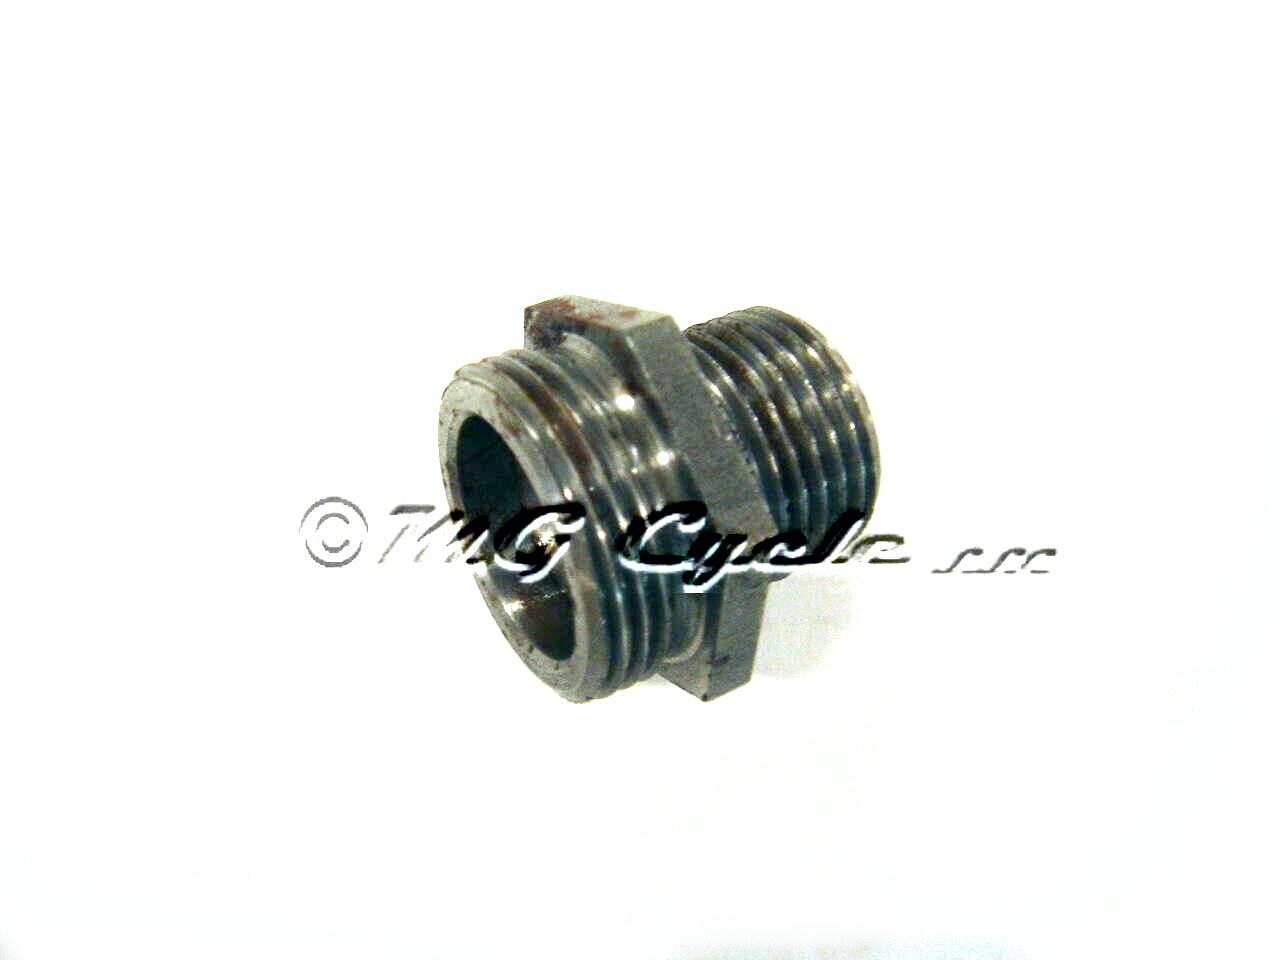 oil filter adapter for larger 30153000 oil filter